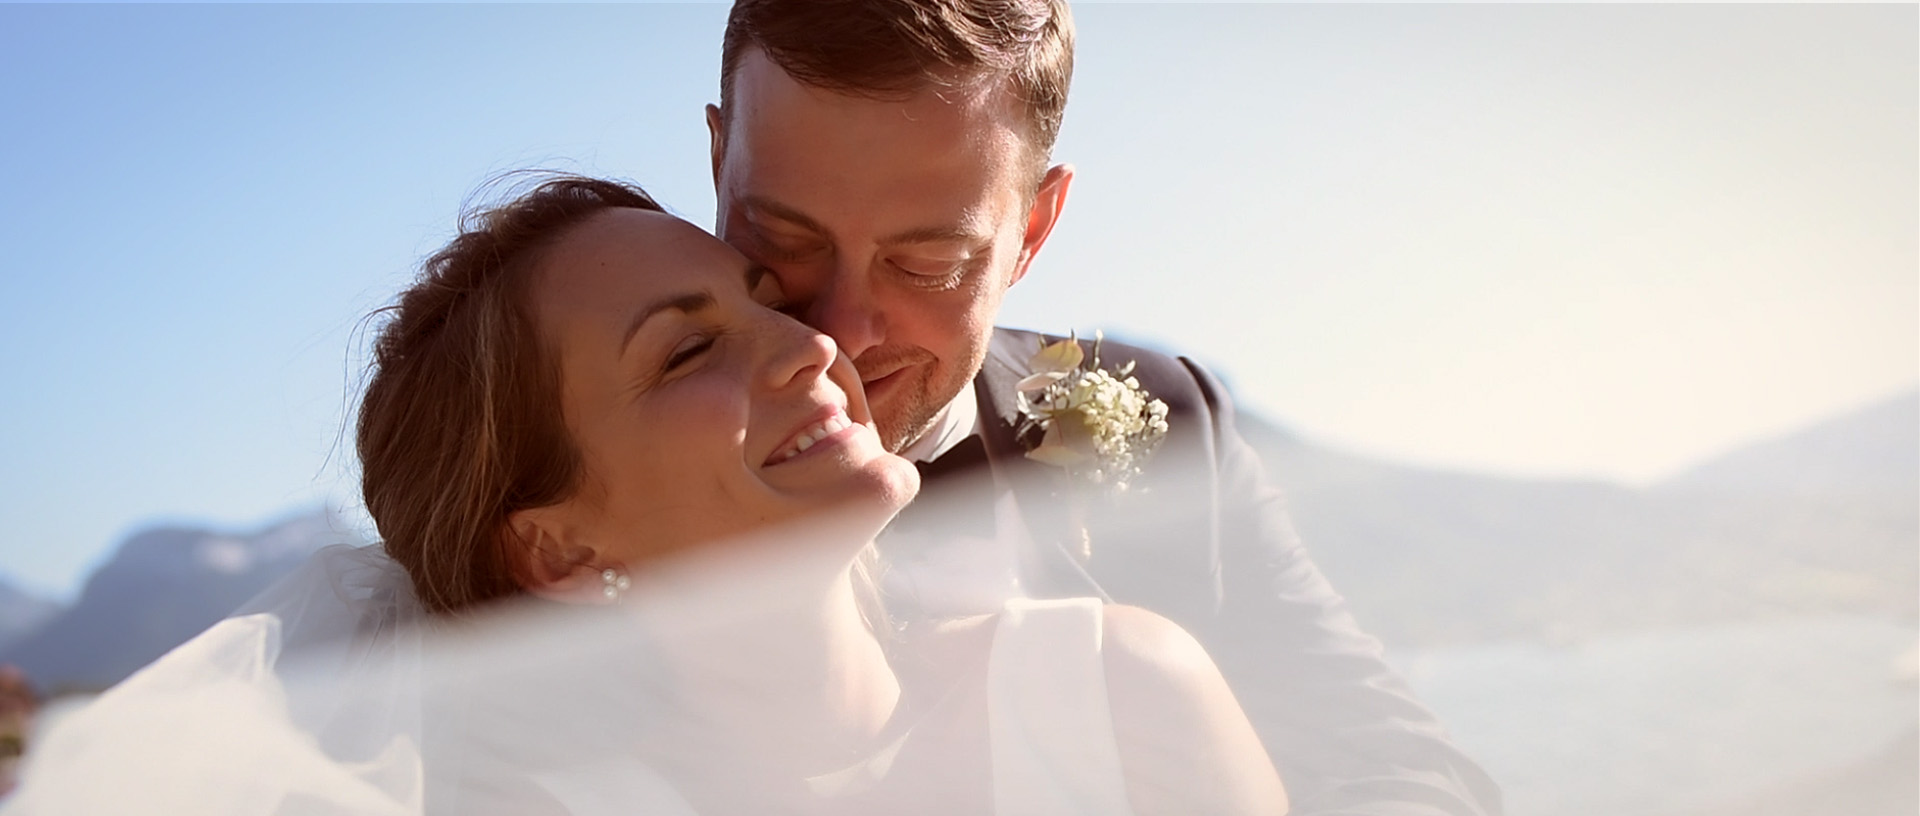 Wedding videographer filmmaker - Destination wedding in France - Normandy